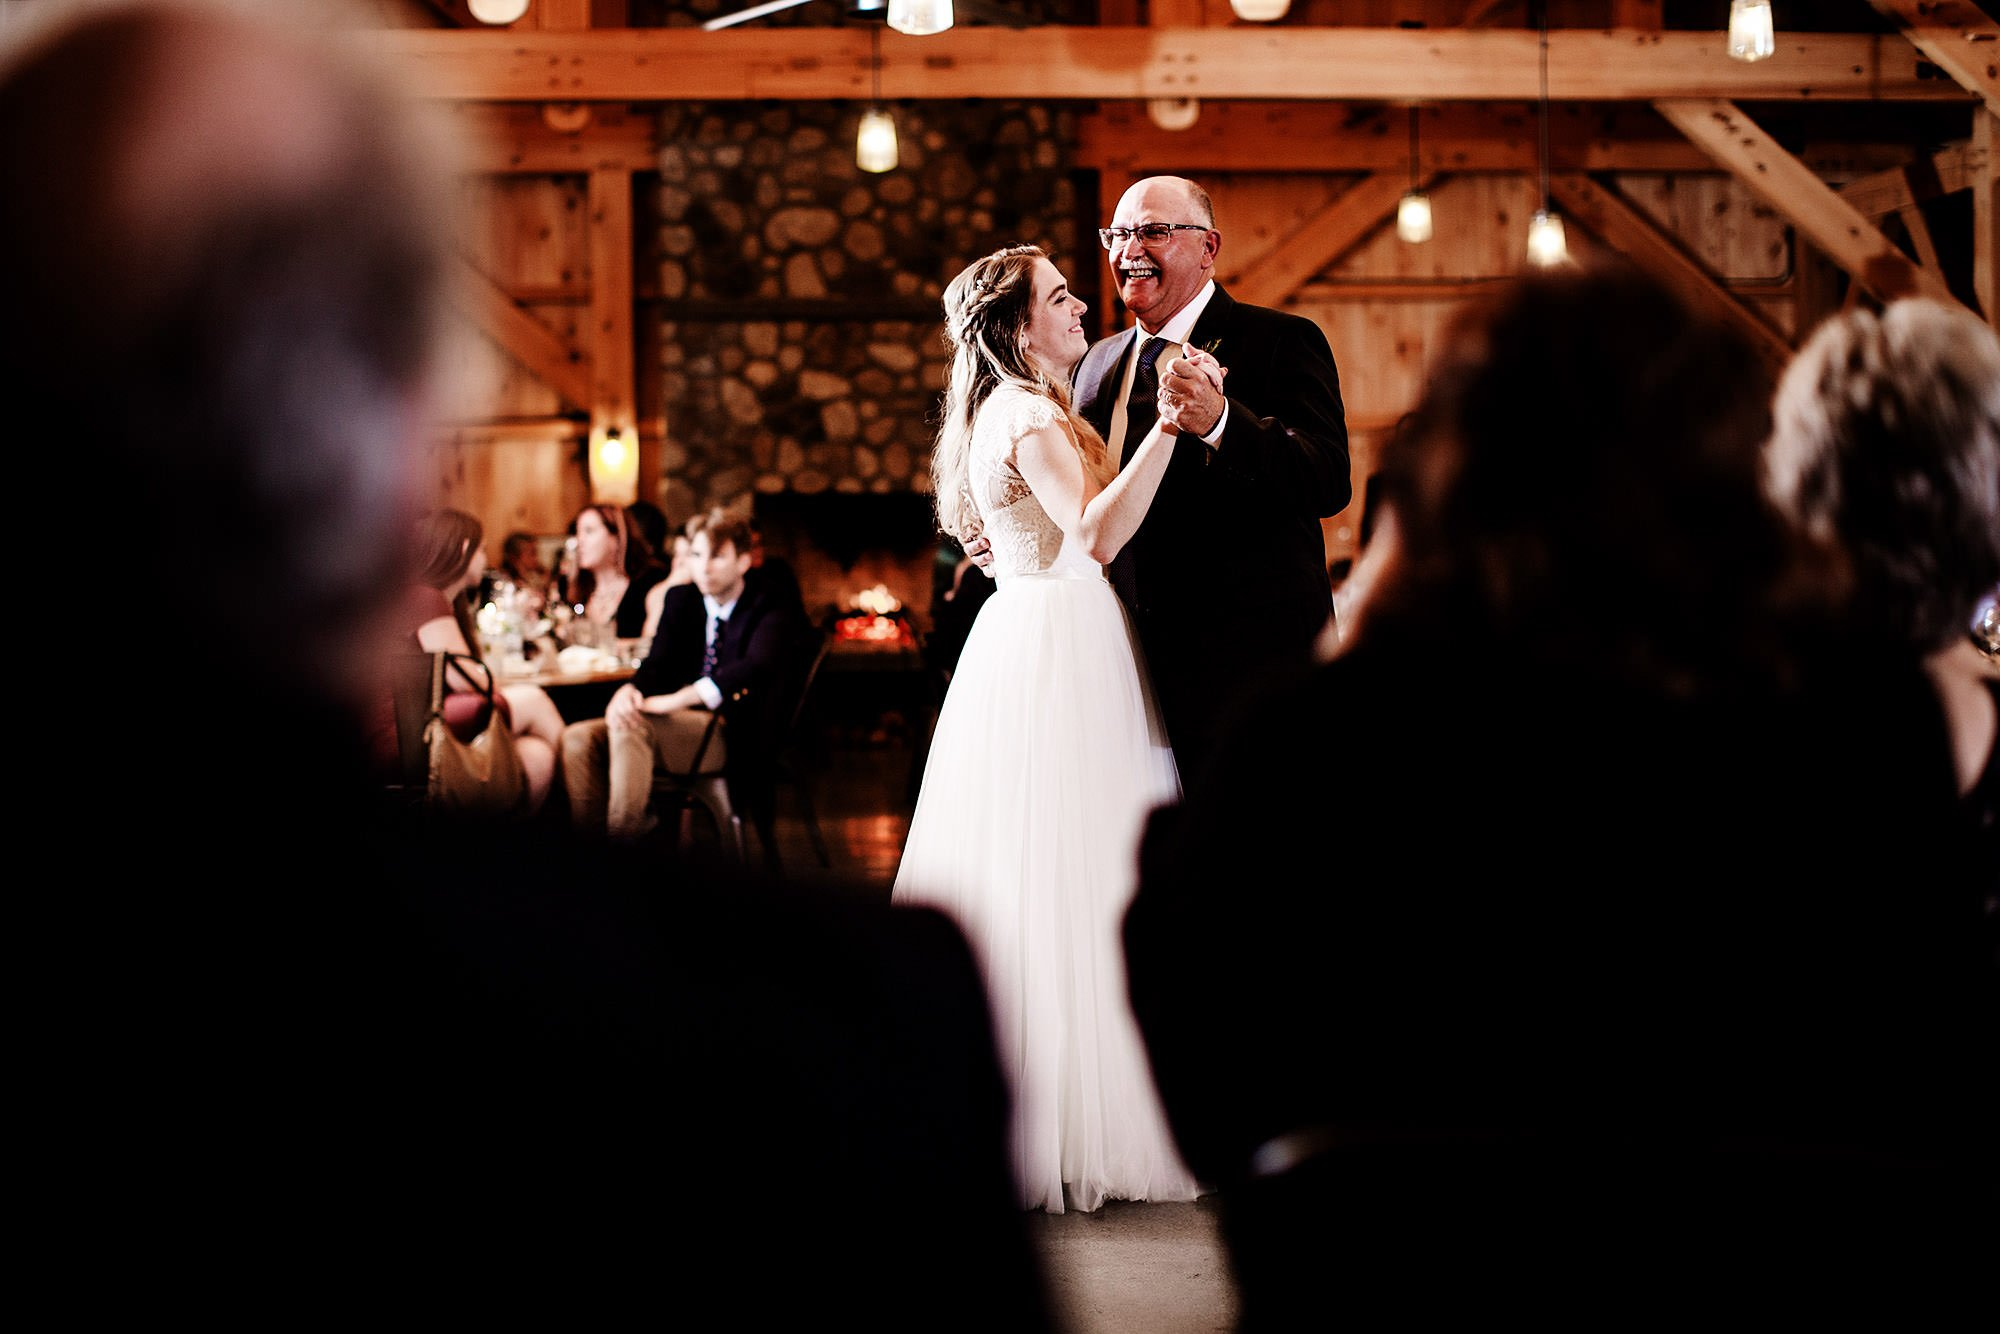 The bride dances with her father during the wedding reception at Mad River Barn.